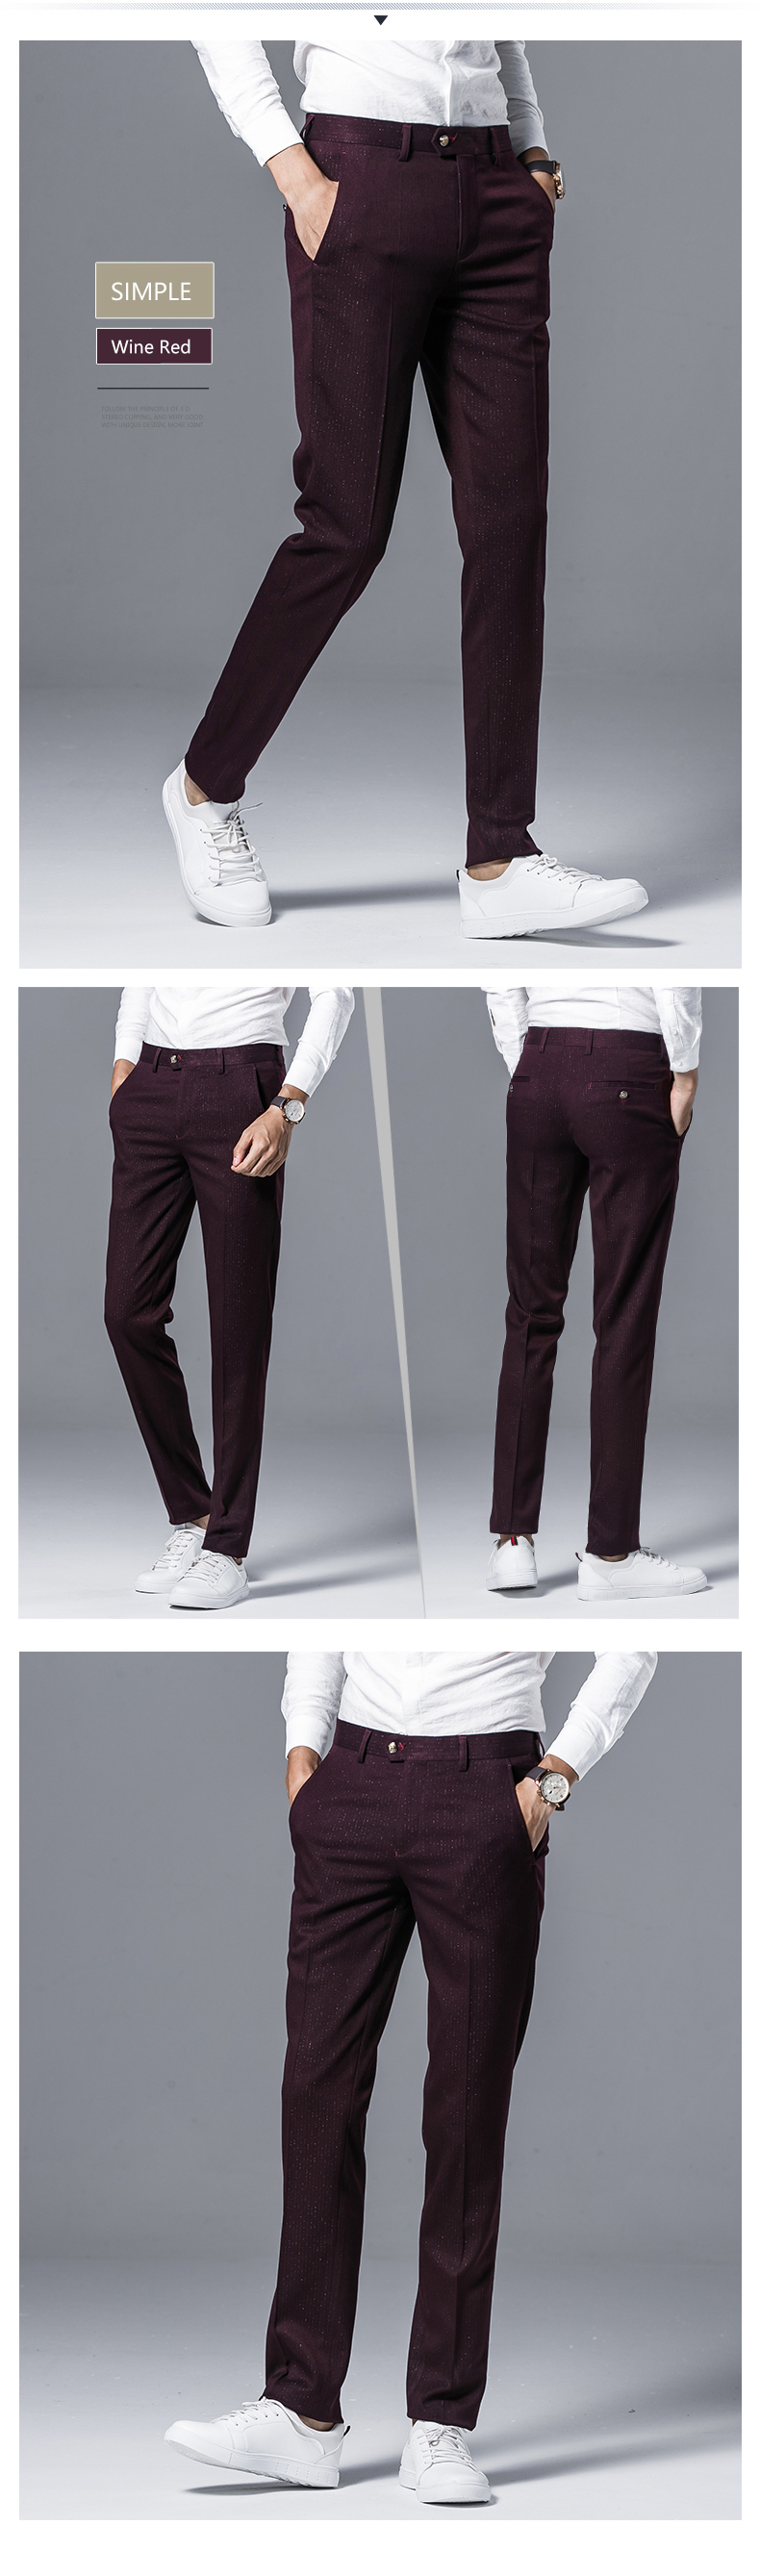 6e975e7b579a18 2019 Desirable Time Men Burgundy Suit Pants Slim Fit Size 28 36 ...